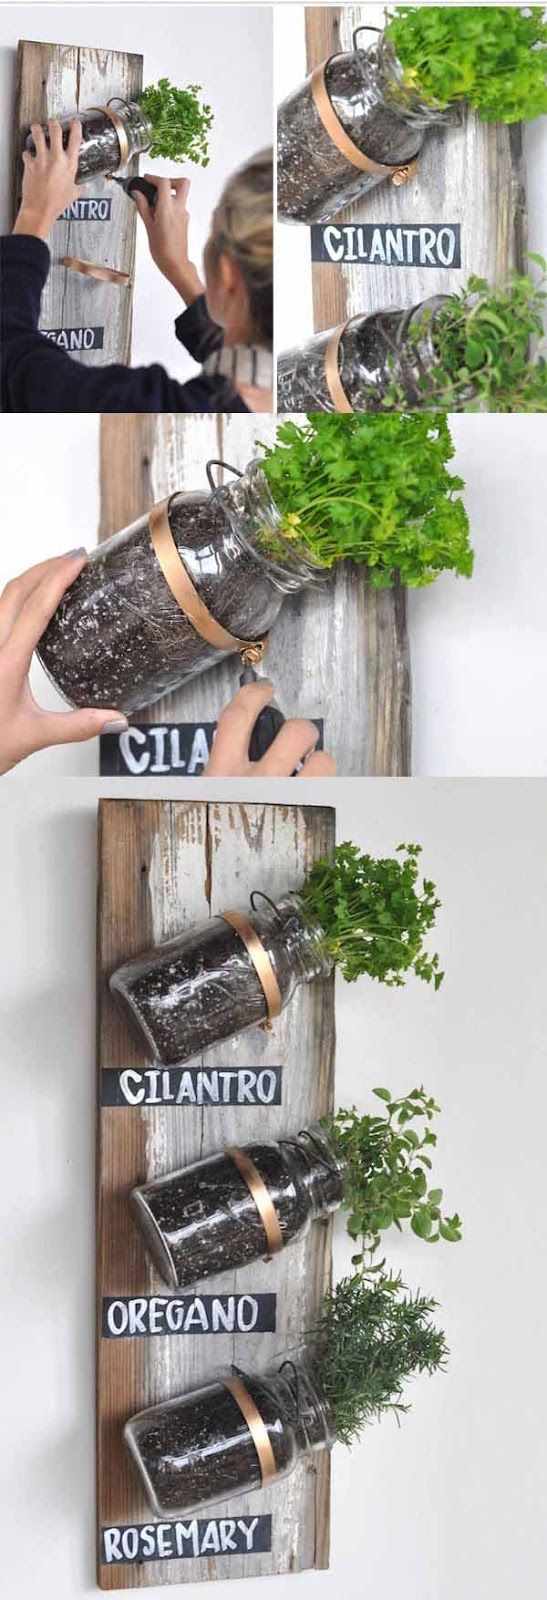 Even if you don't have a backyard or a spacious kitchen, you can have an herb garden using mason jars!  #gardening